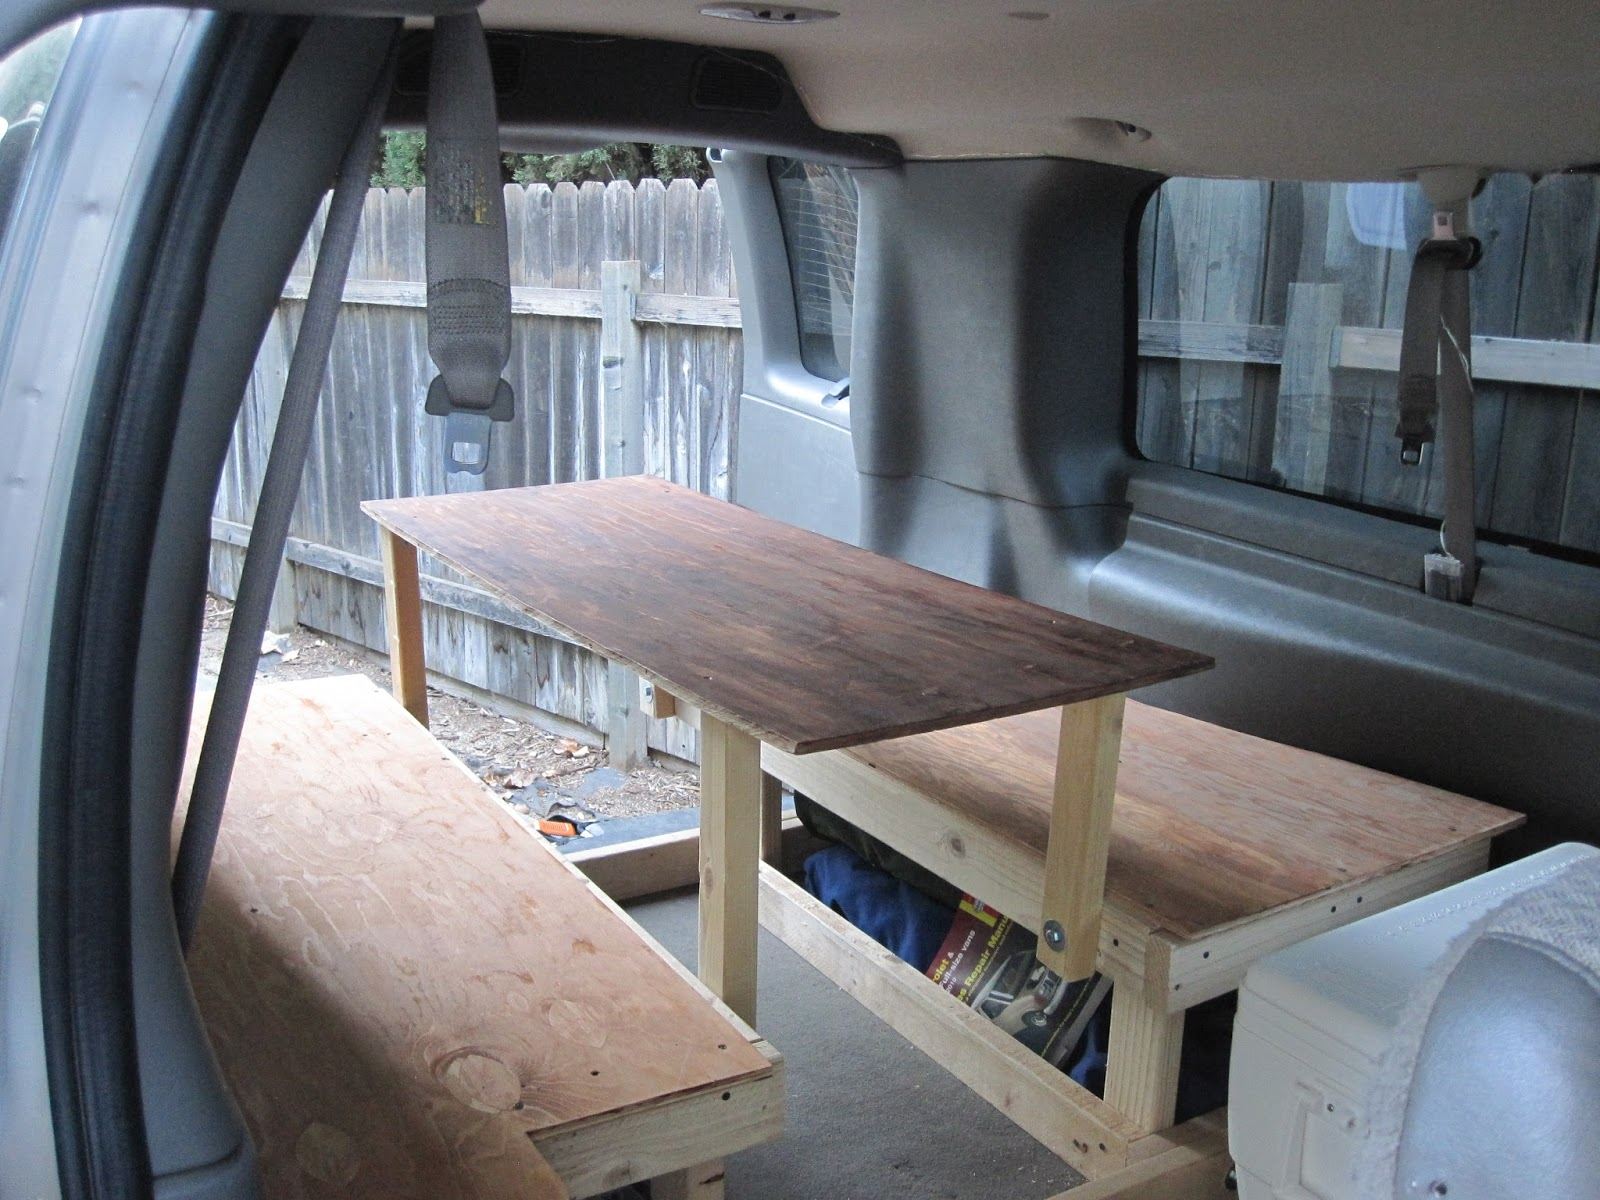 Building The Bed And Table From A Chevy Express To A Diy